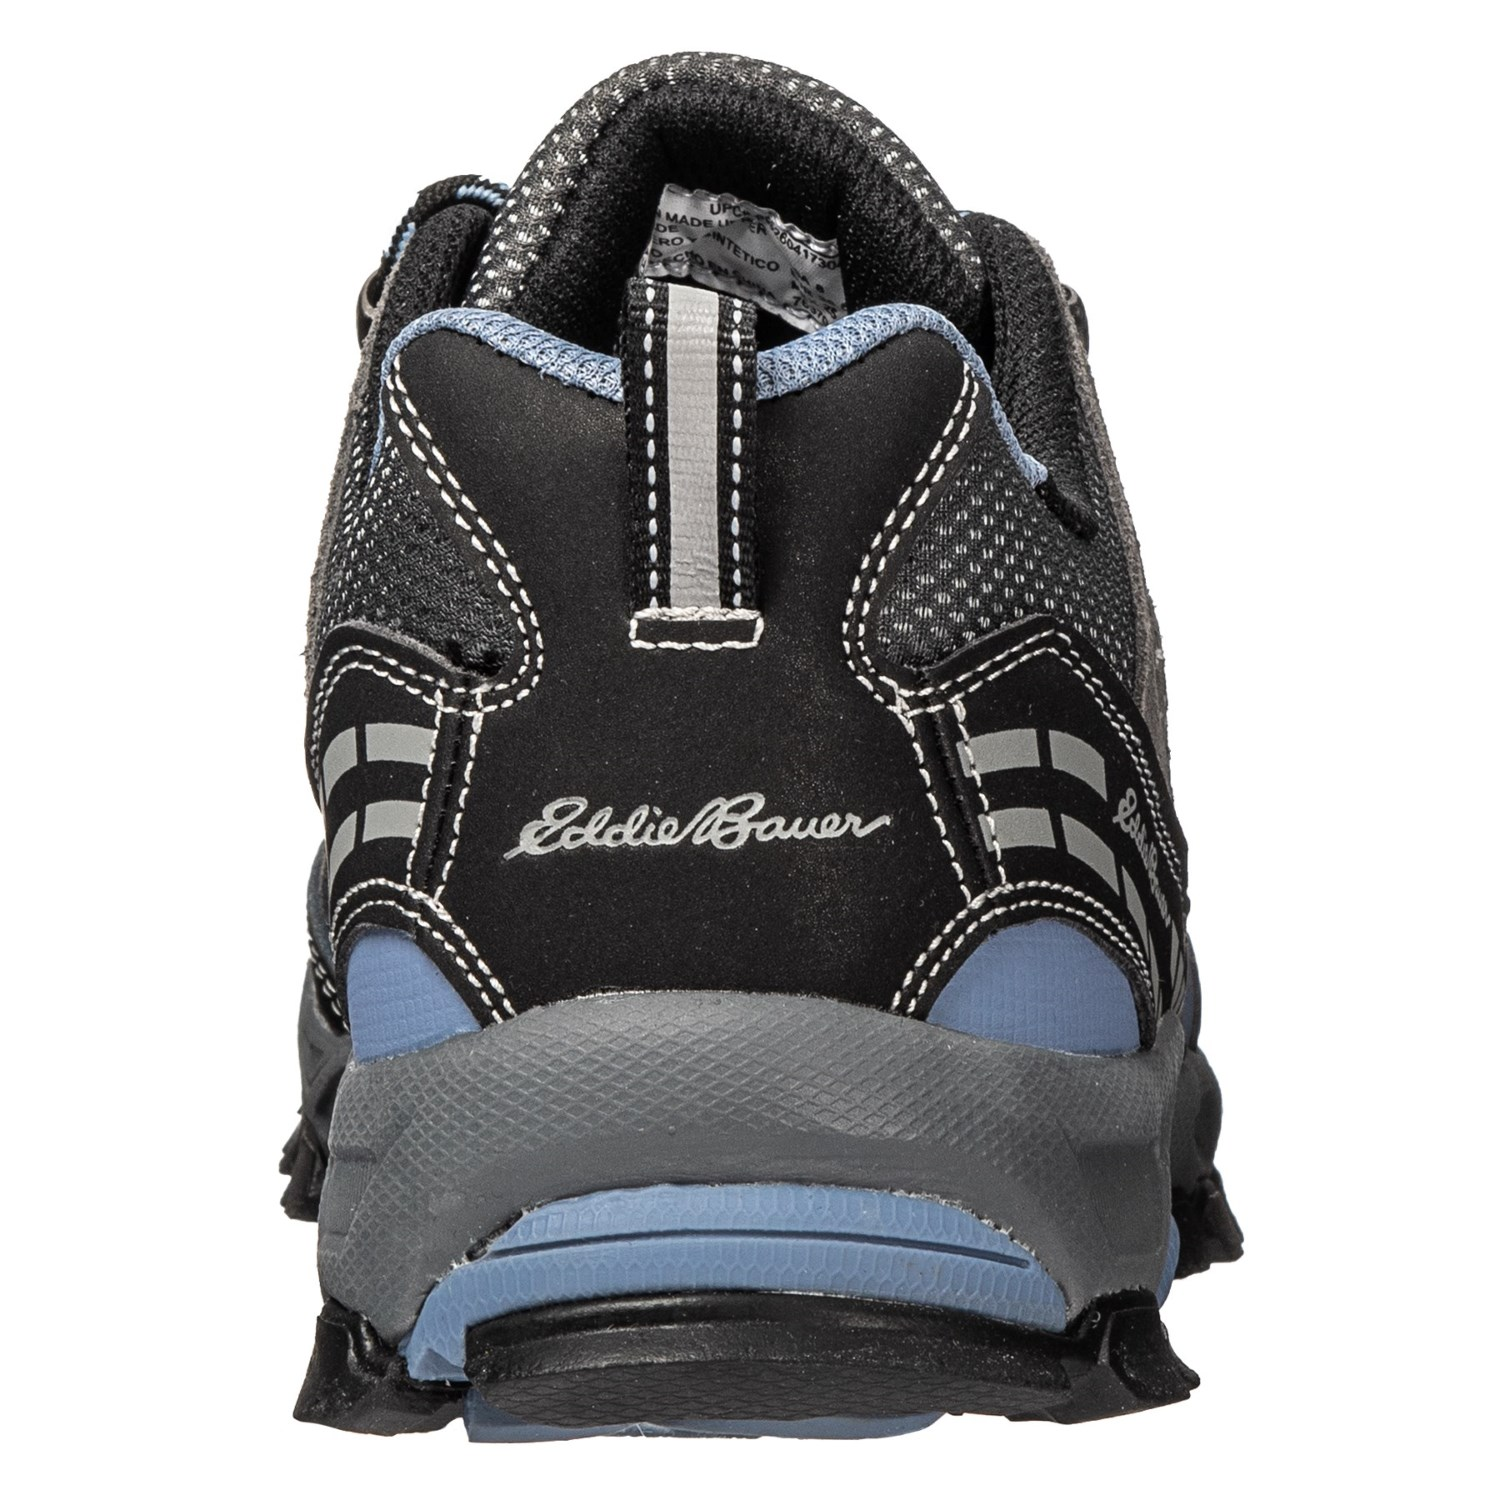 49ceedb0dee Eddie Bauer Bailey Hiking Shoes (For Women)